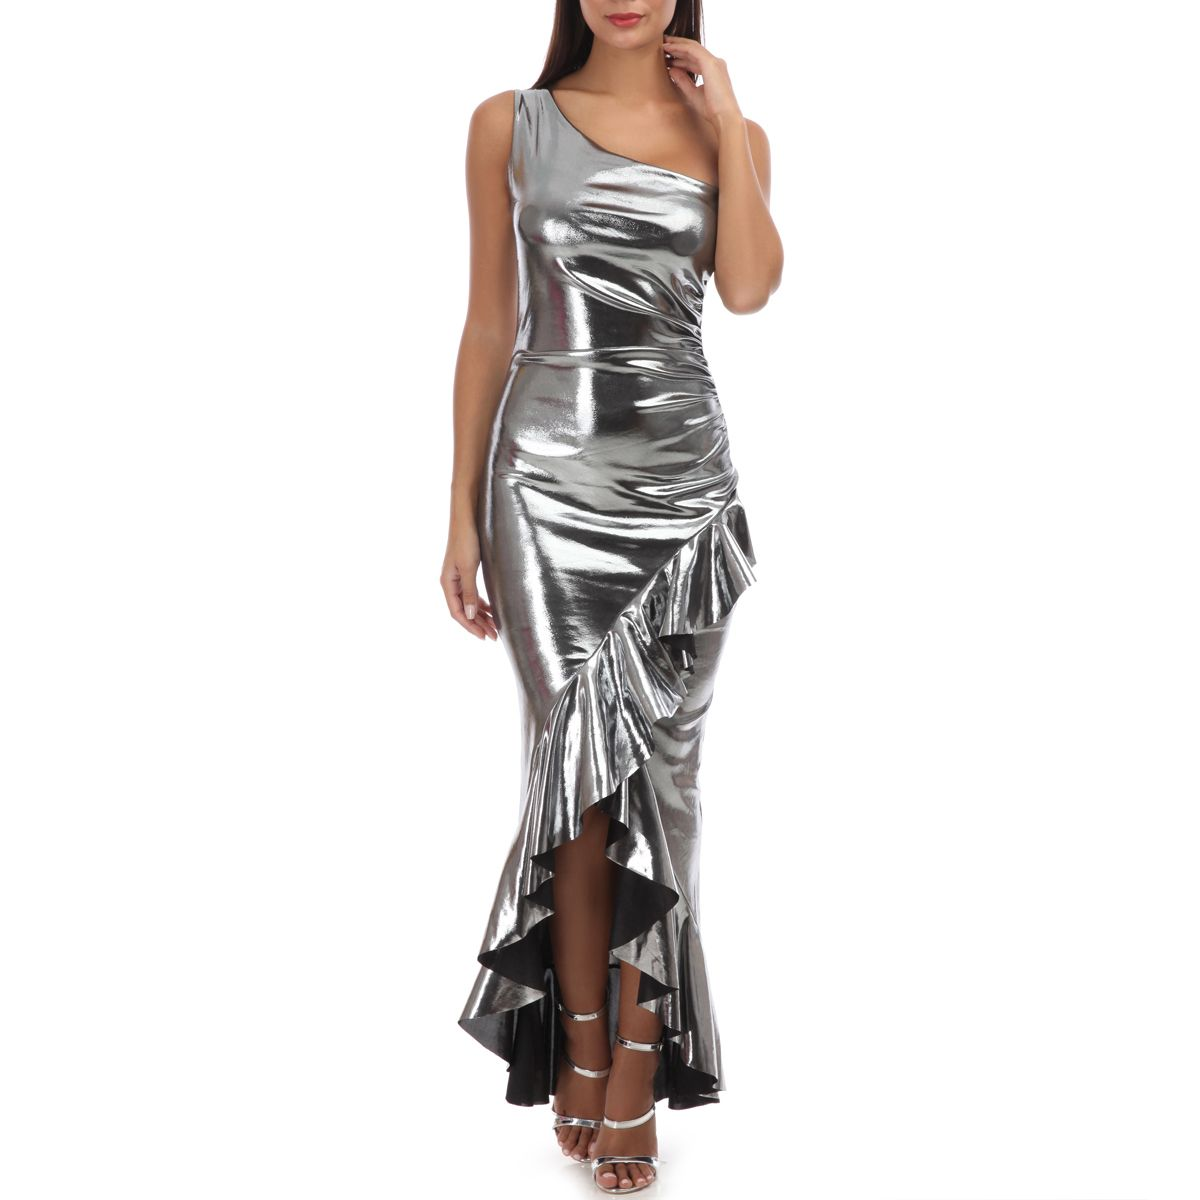 Robe Argentee Lamee One Shoulder A Volants